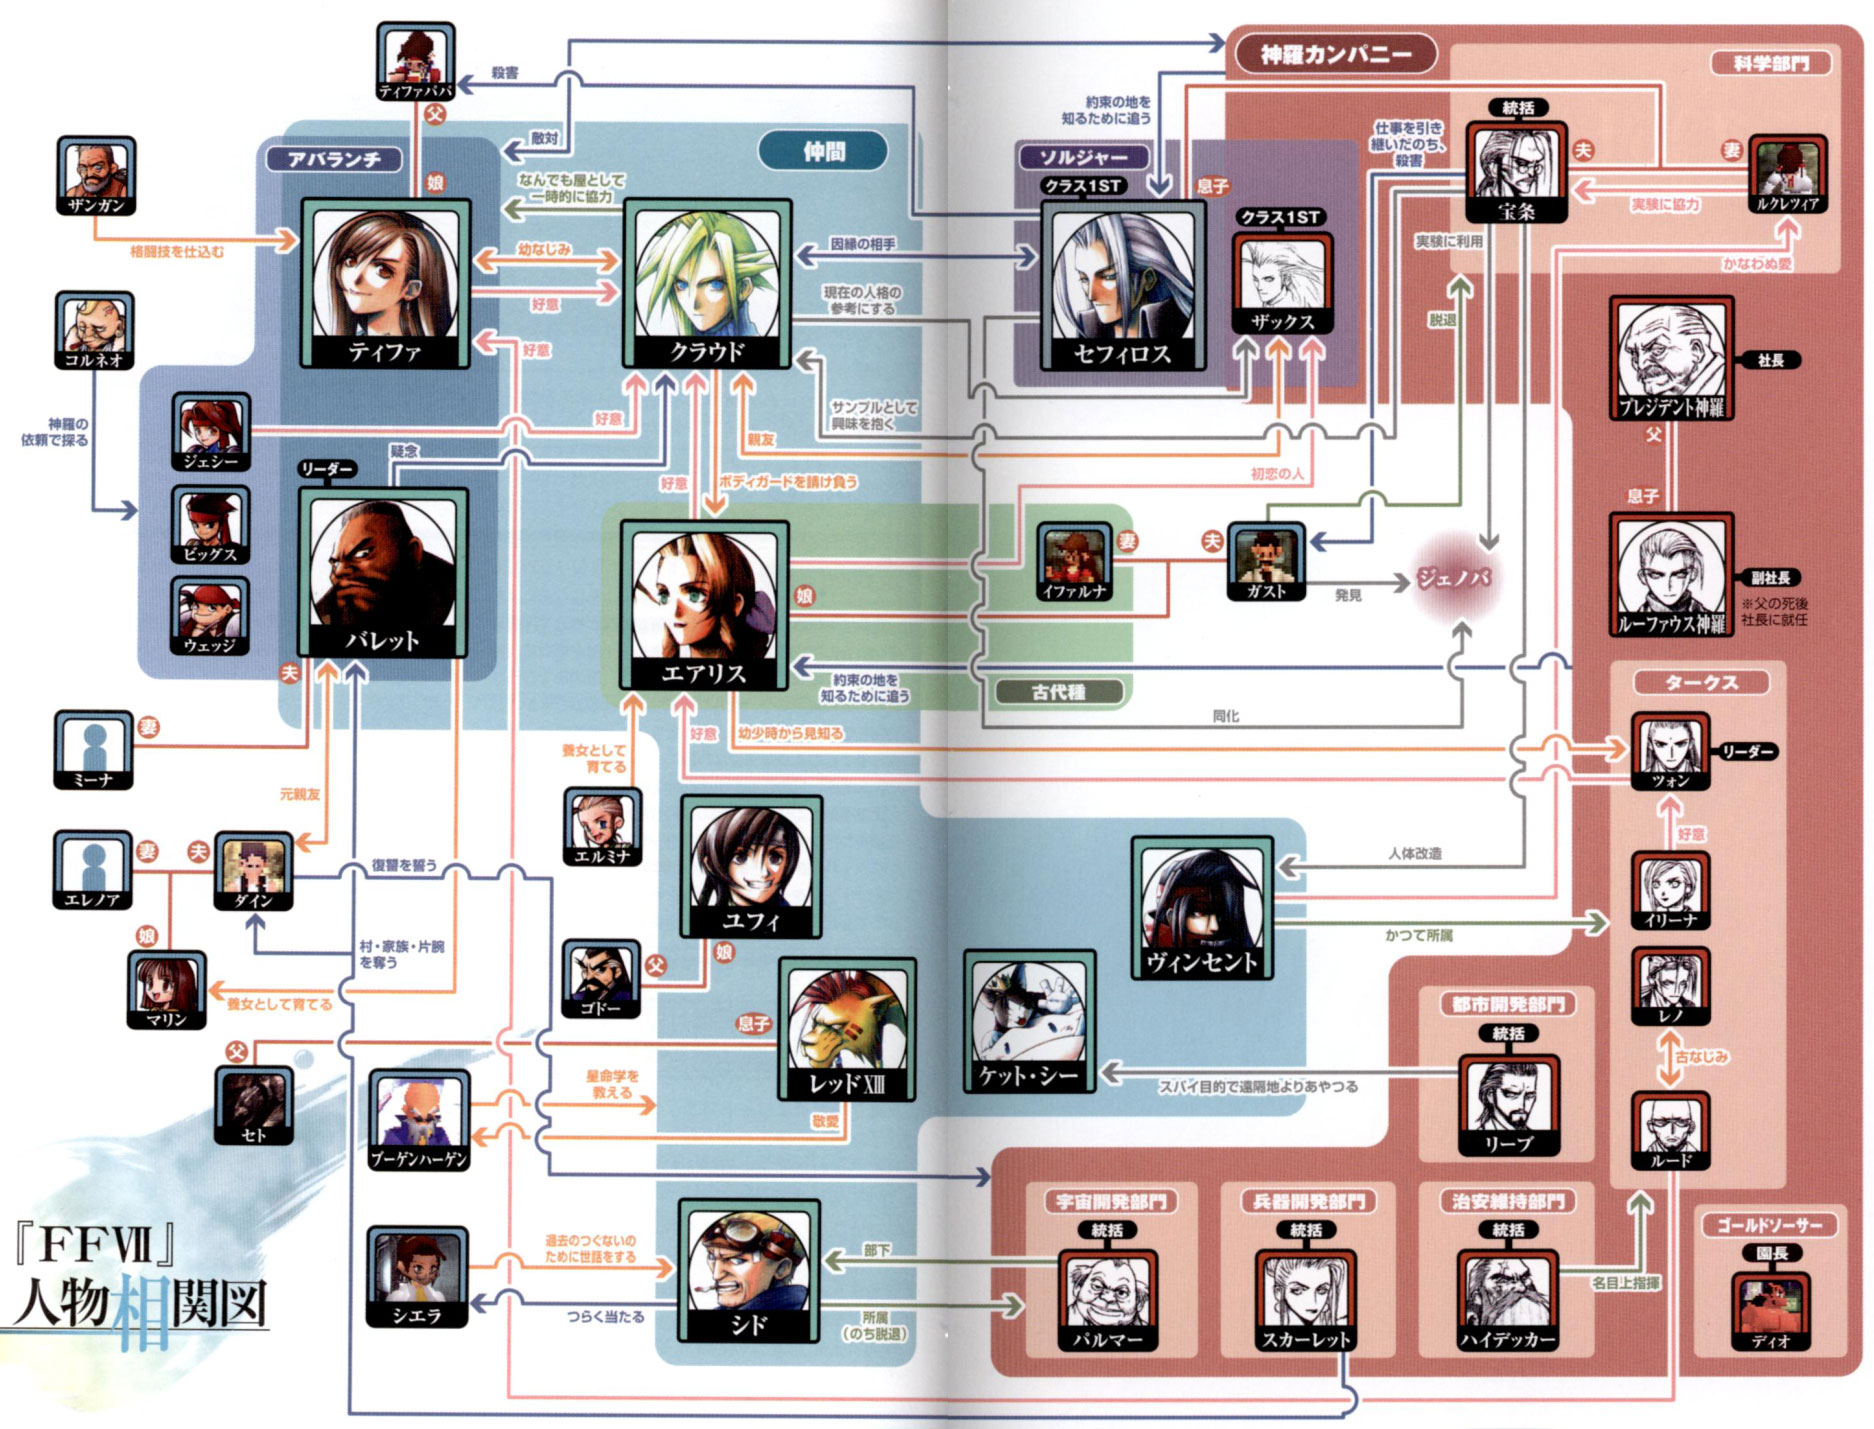 Final Fantasy VII characters | Final Fantasy Wiki | FANDOM powered ...